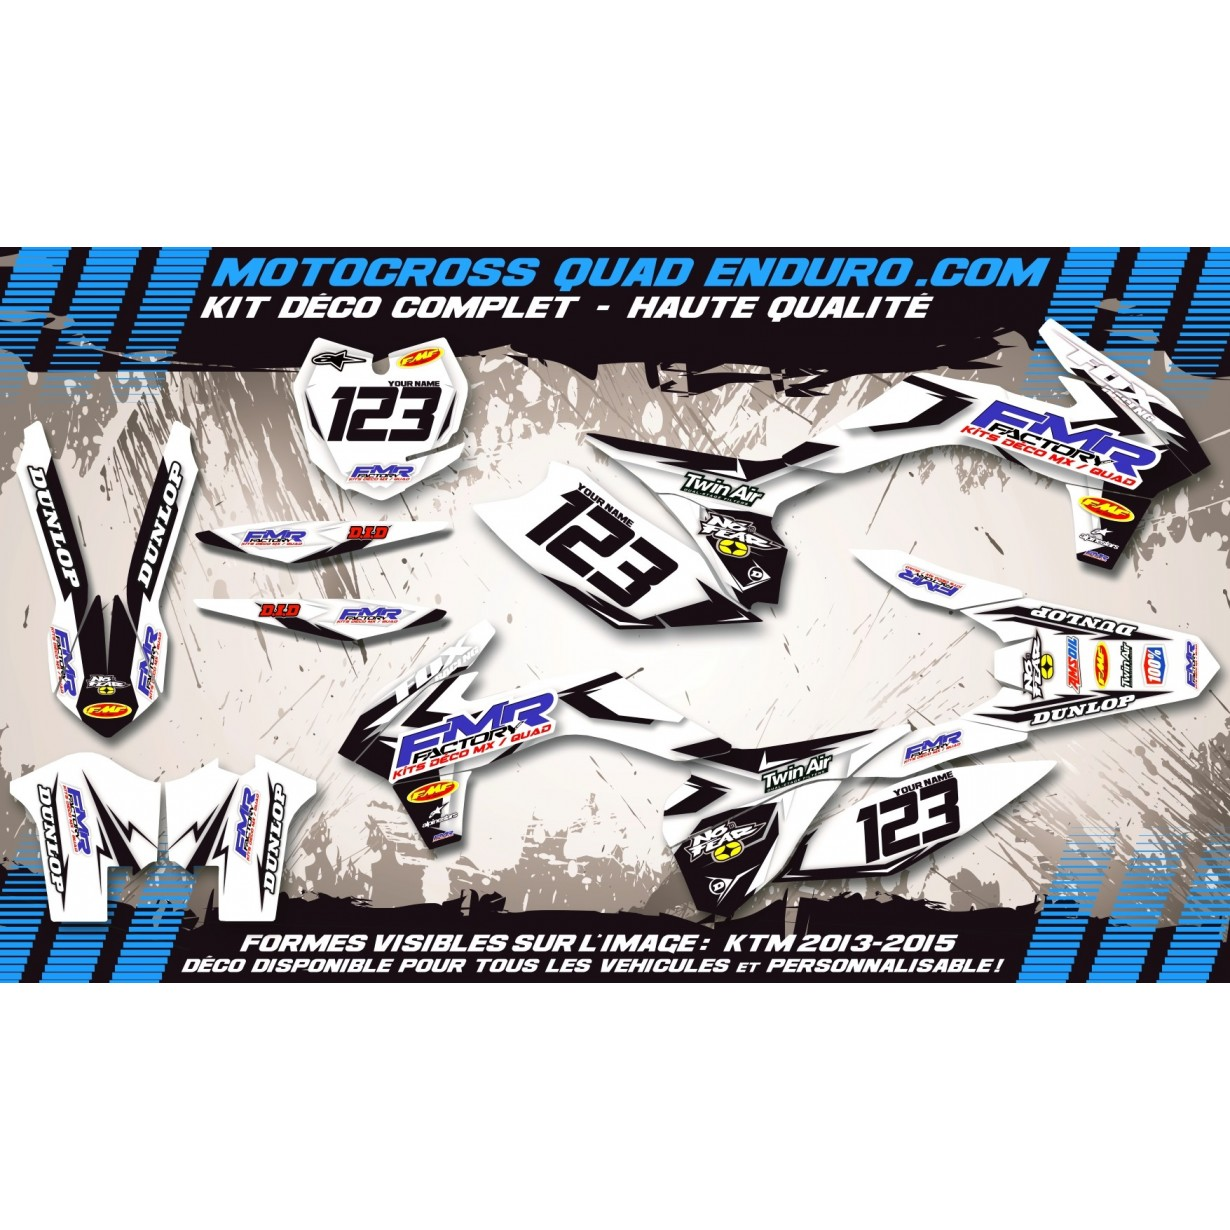 KIT DÉCO Perso 650 XR 00-09 Fmr factory WT Edition MA13WT